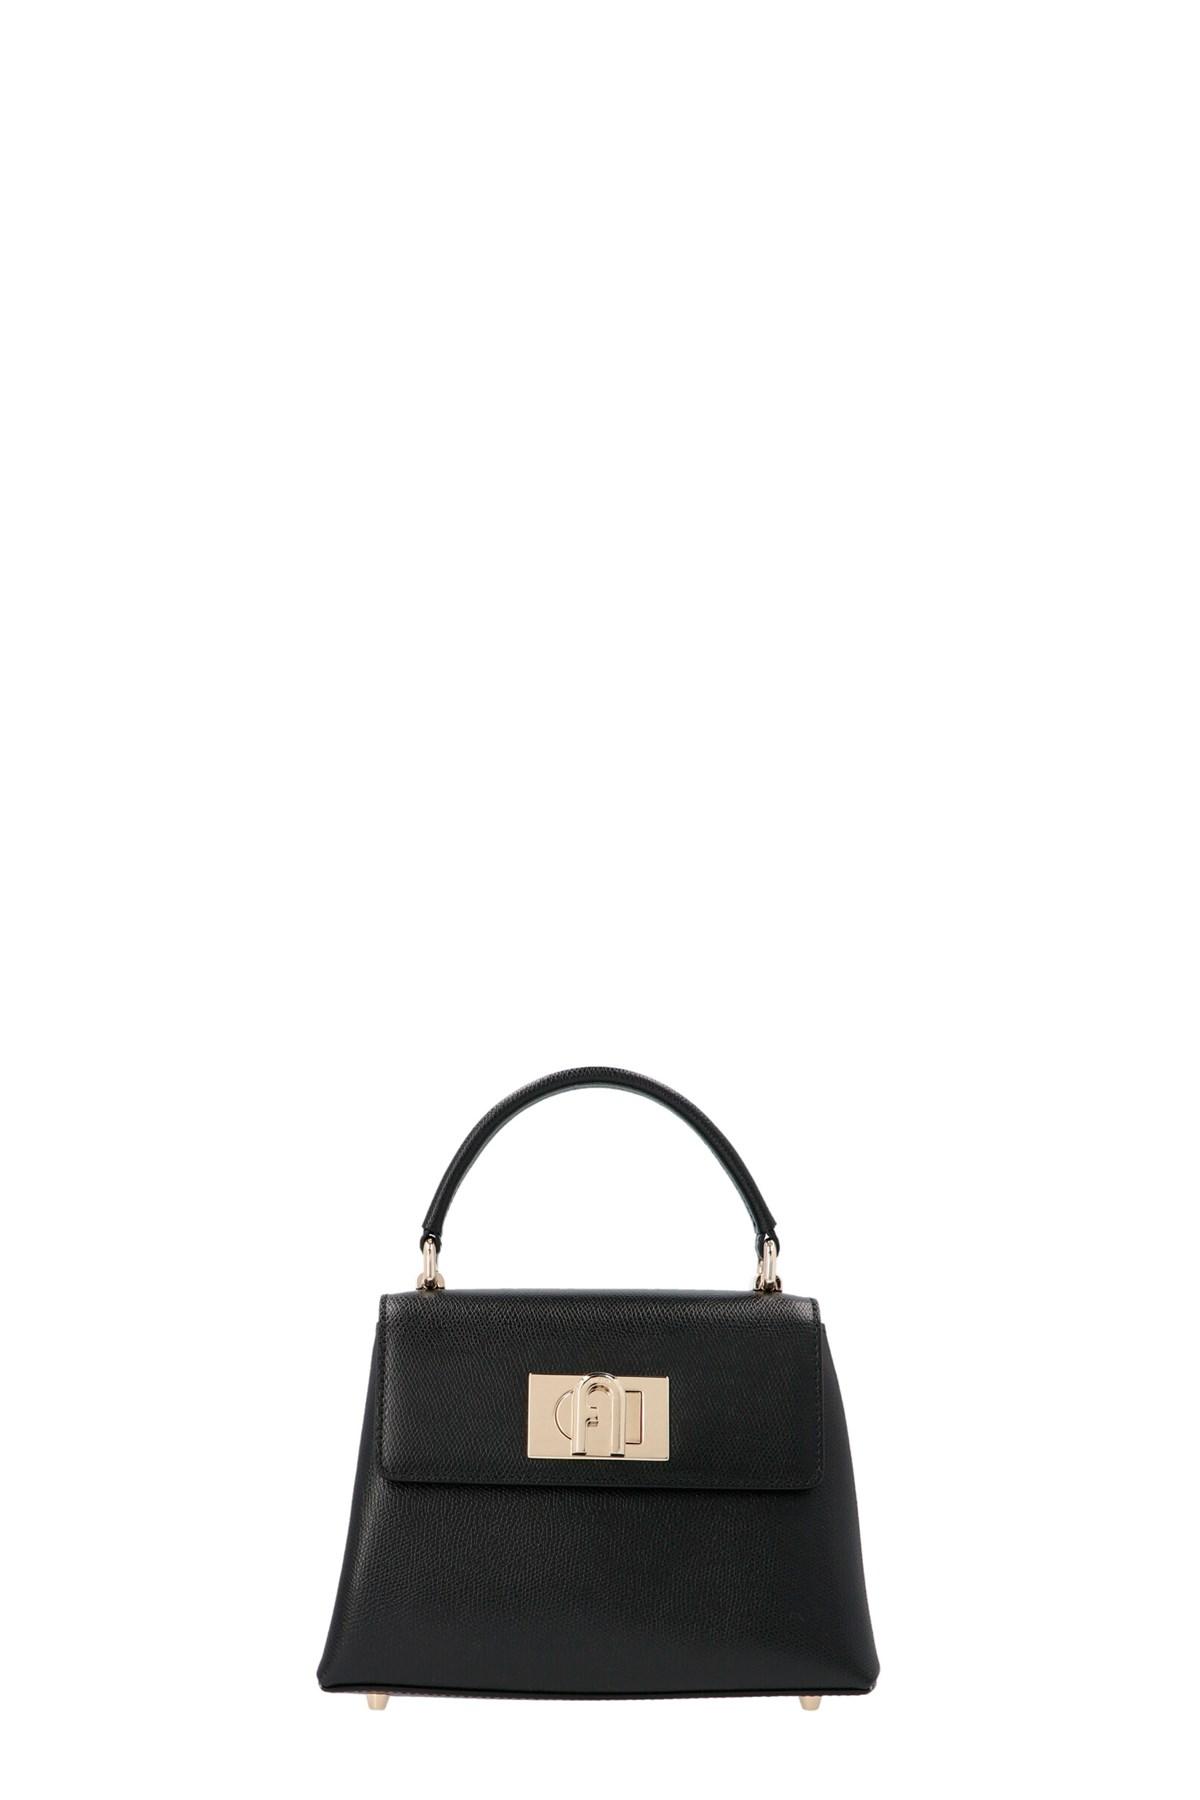 FURLA '1927 Mini' Handbag' from FURLA